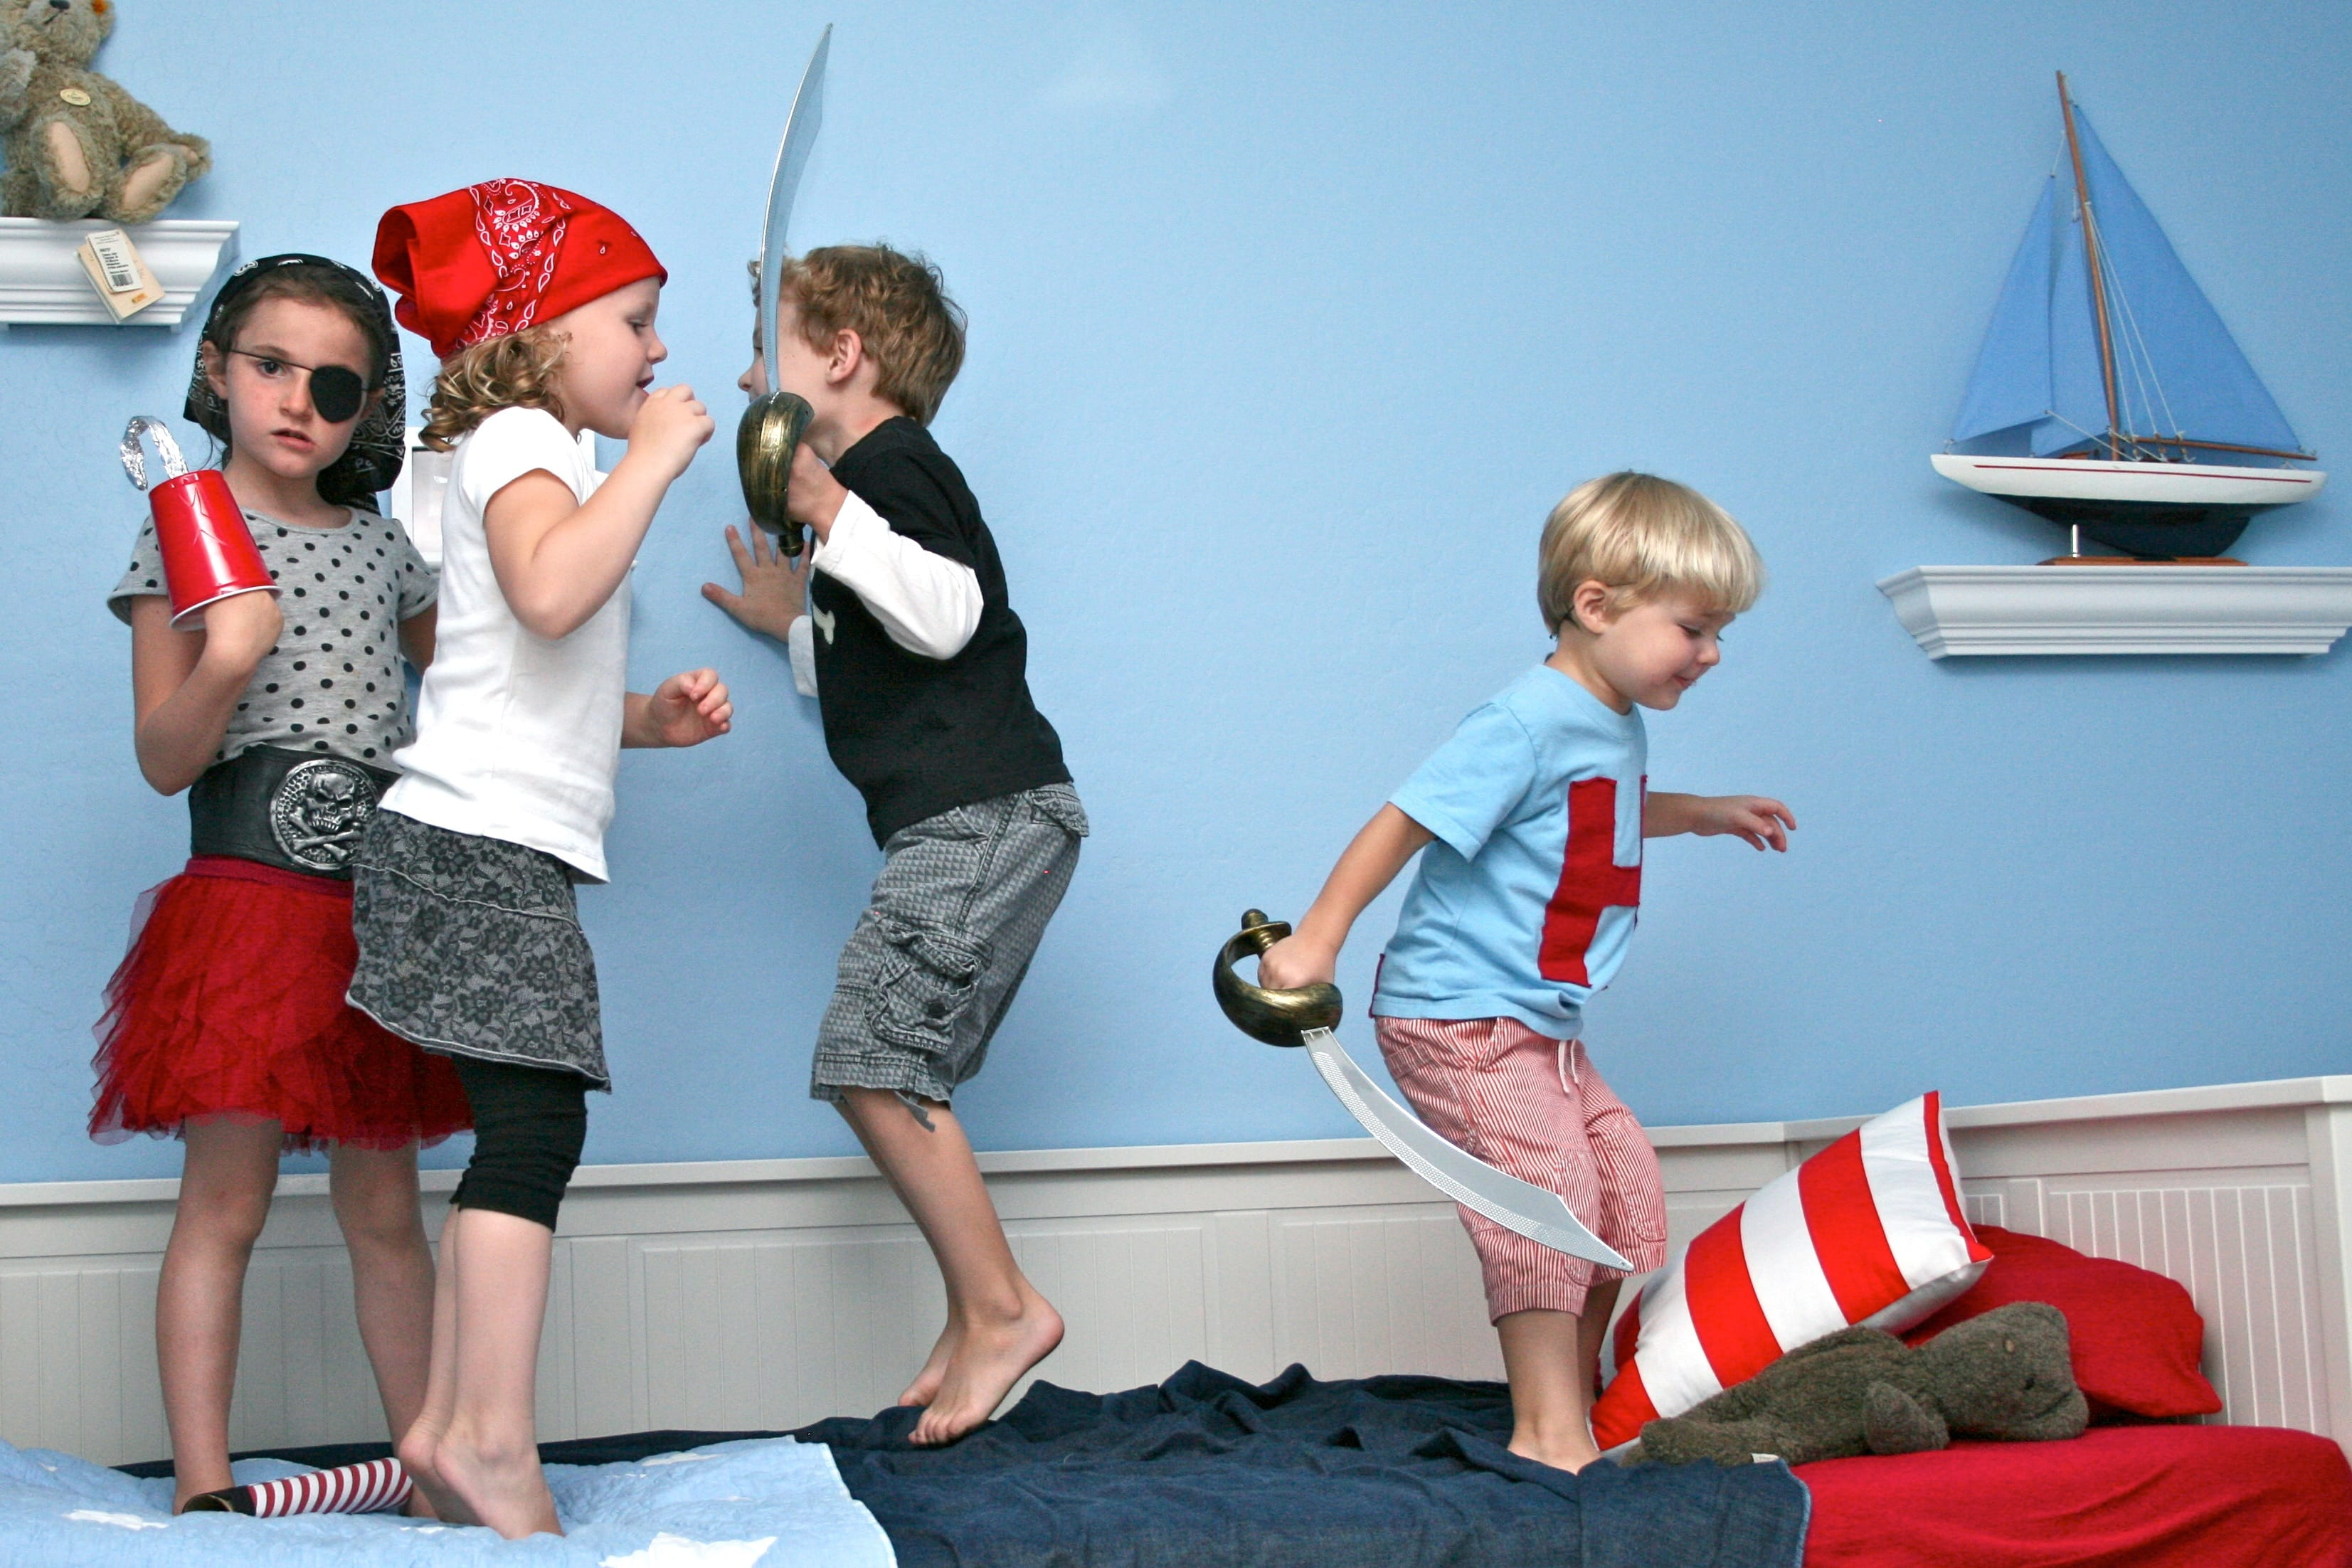 dressing up, from 8 Fun Indoor Activities for the Coldest Days Kids Will Love, from lernin blog